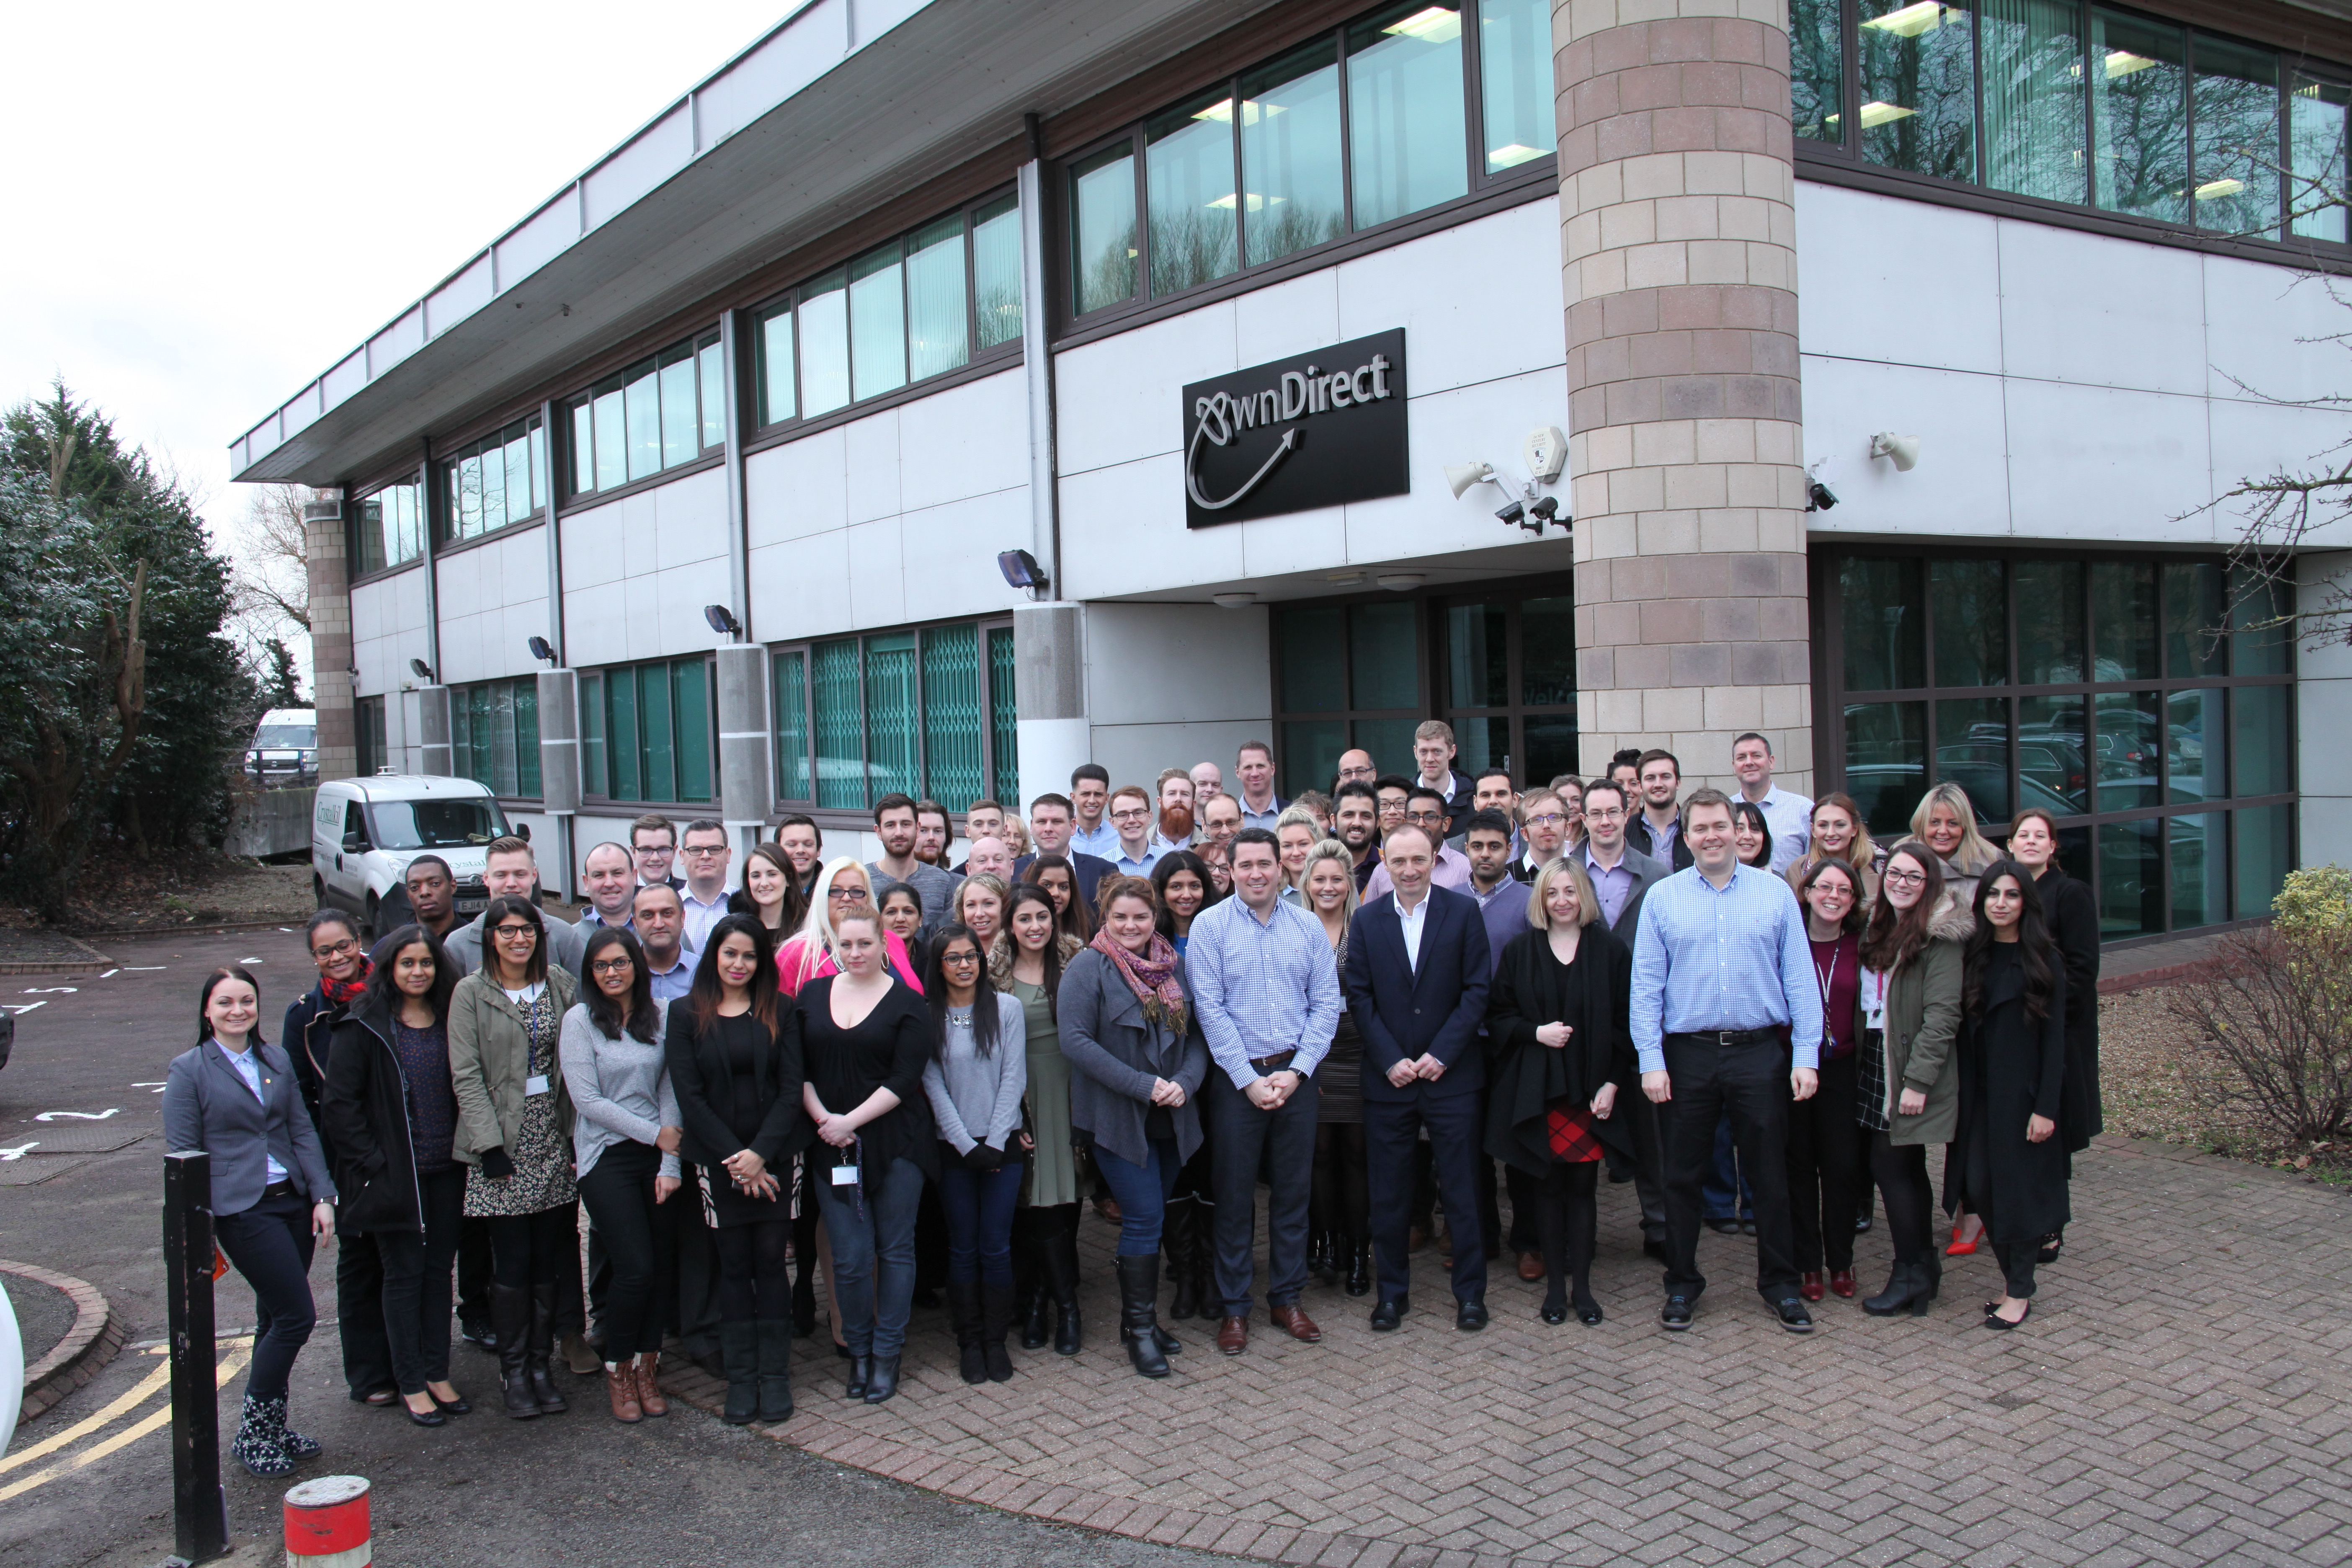 wnDirect's new office space supports growth plans